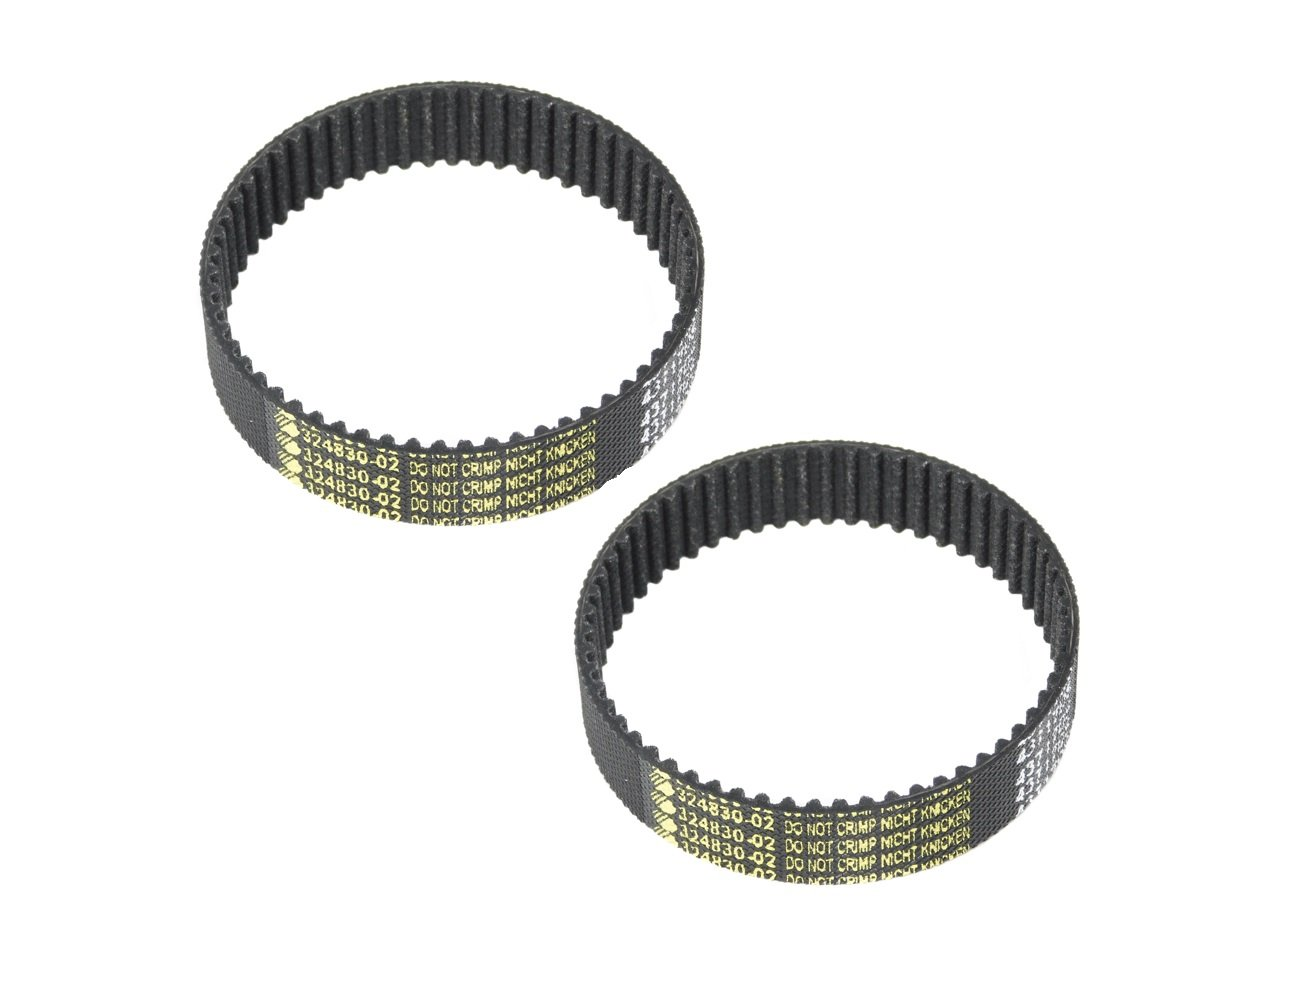 Black & Decker 7696 Planer Type 6-7 Replacement (2 Pack) Drive Belt # 324830-02-2pk Stanley Black&Decker